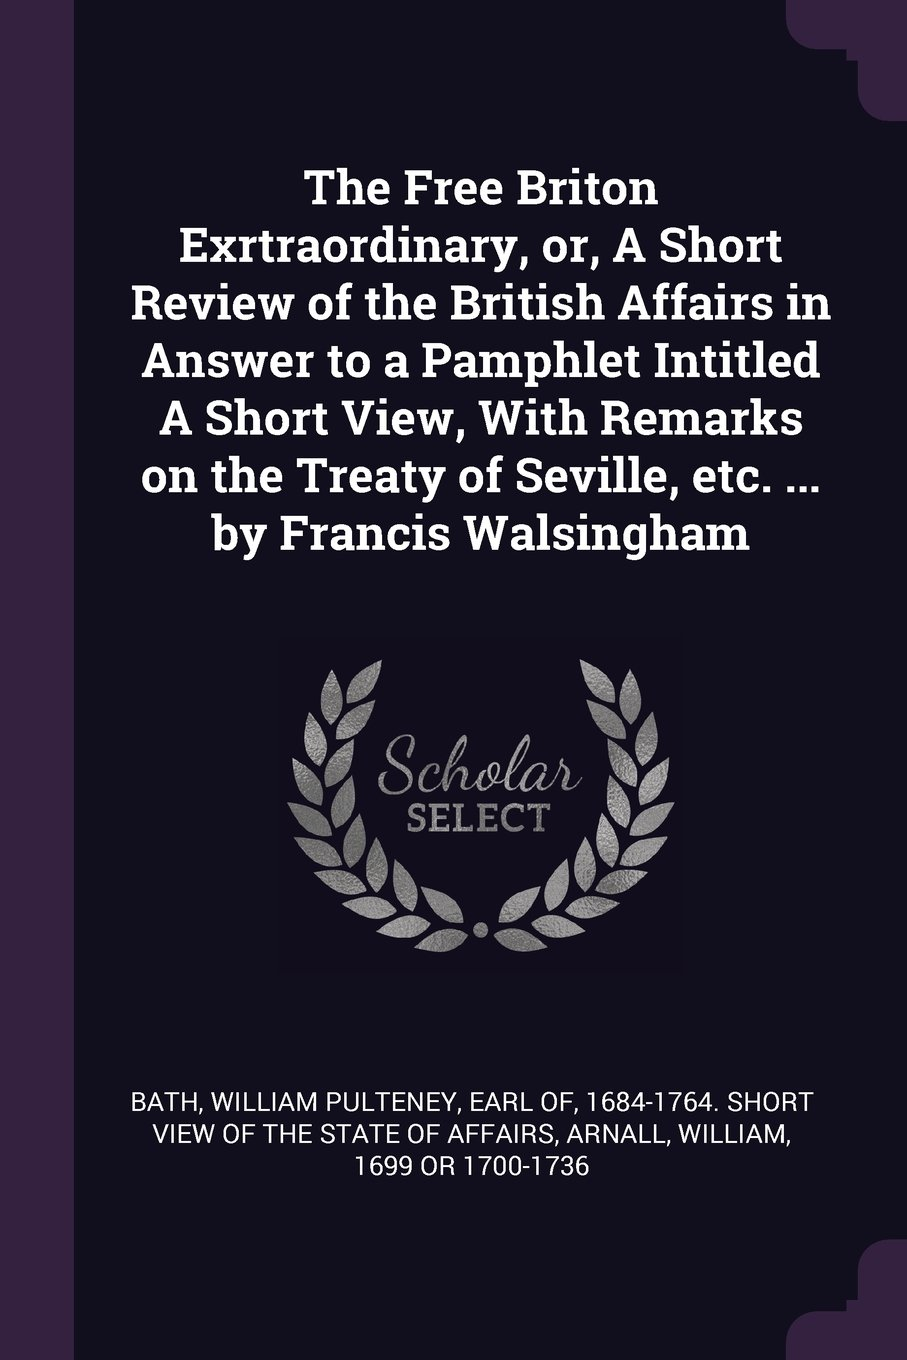 Read Online The Free Briton Exrtraordinary, Or, a Short Review of the British Affairs in Answer to a Pamphlet Intitled a Short View, with Remarks on the Treaty of Seville, Etc. ... by Francis Walsingham ebook